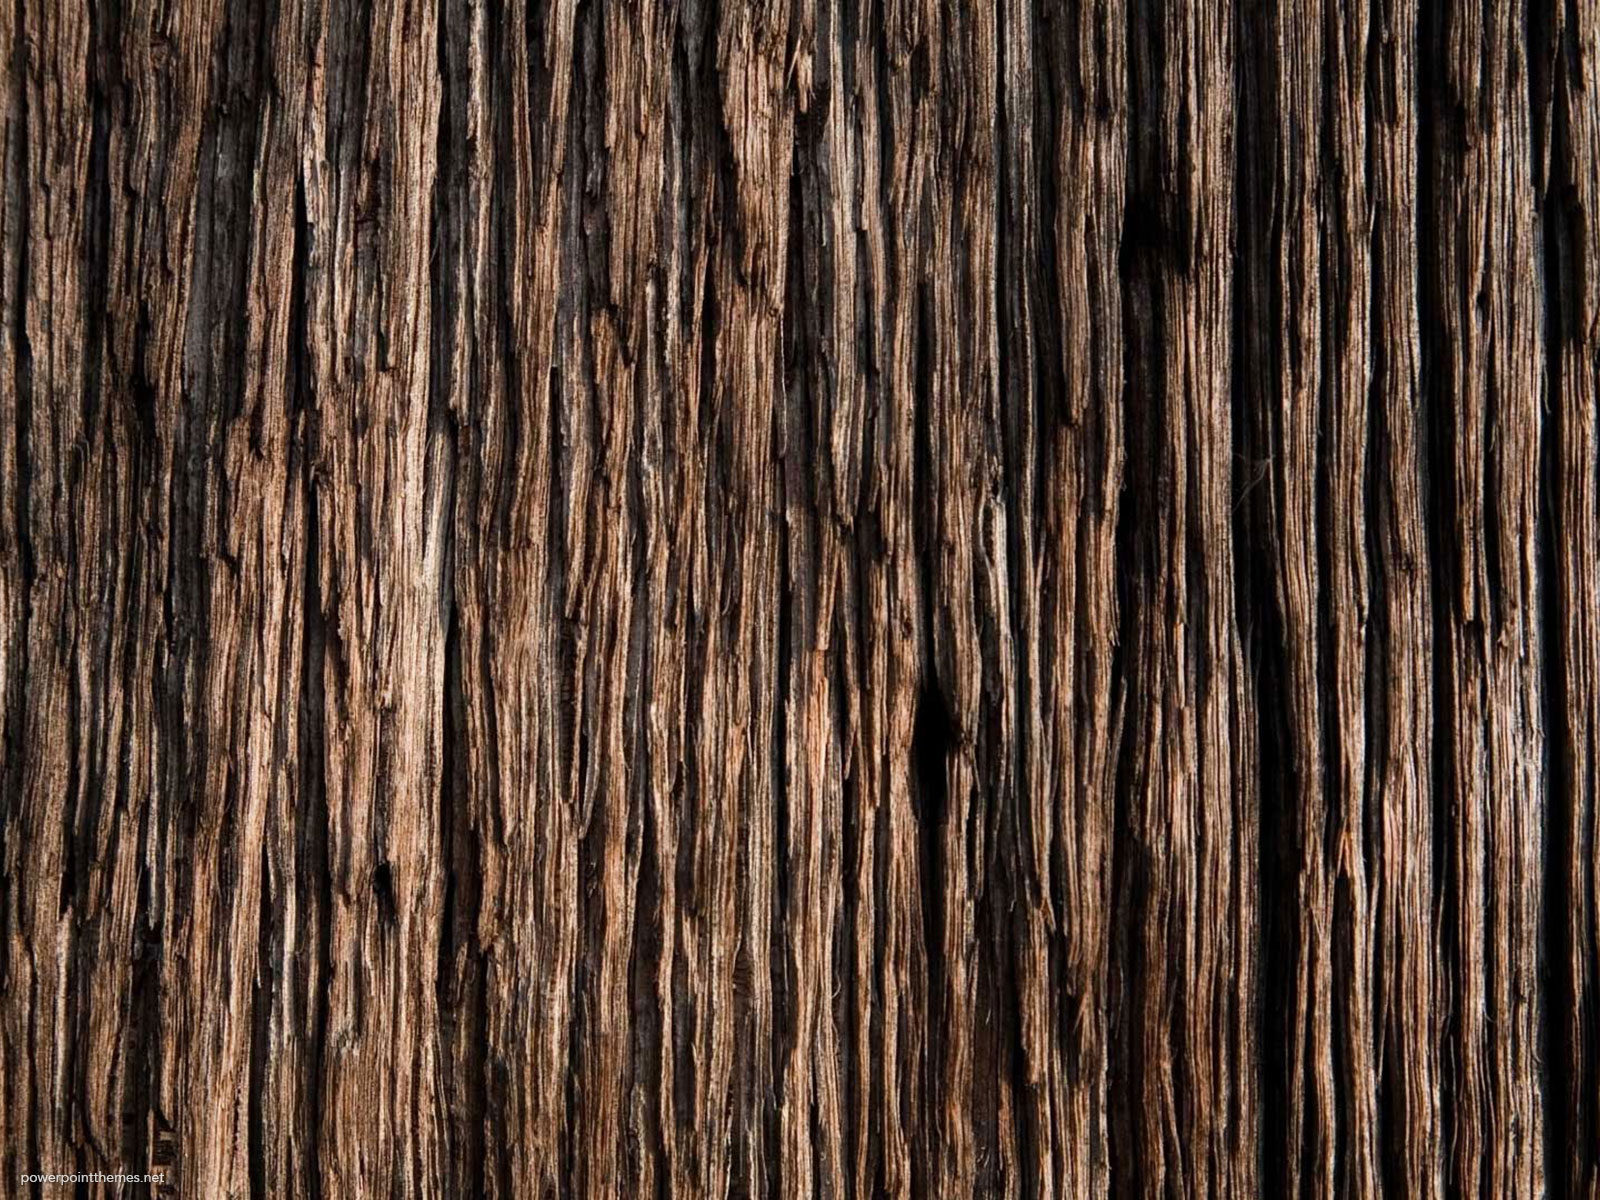 Tree Skin Background